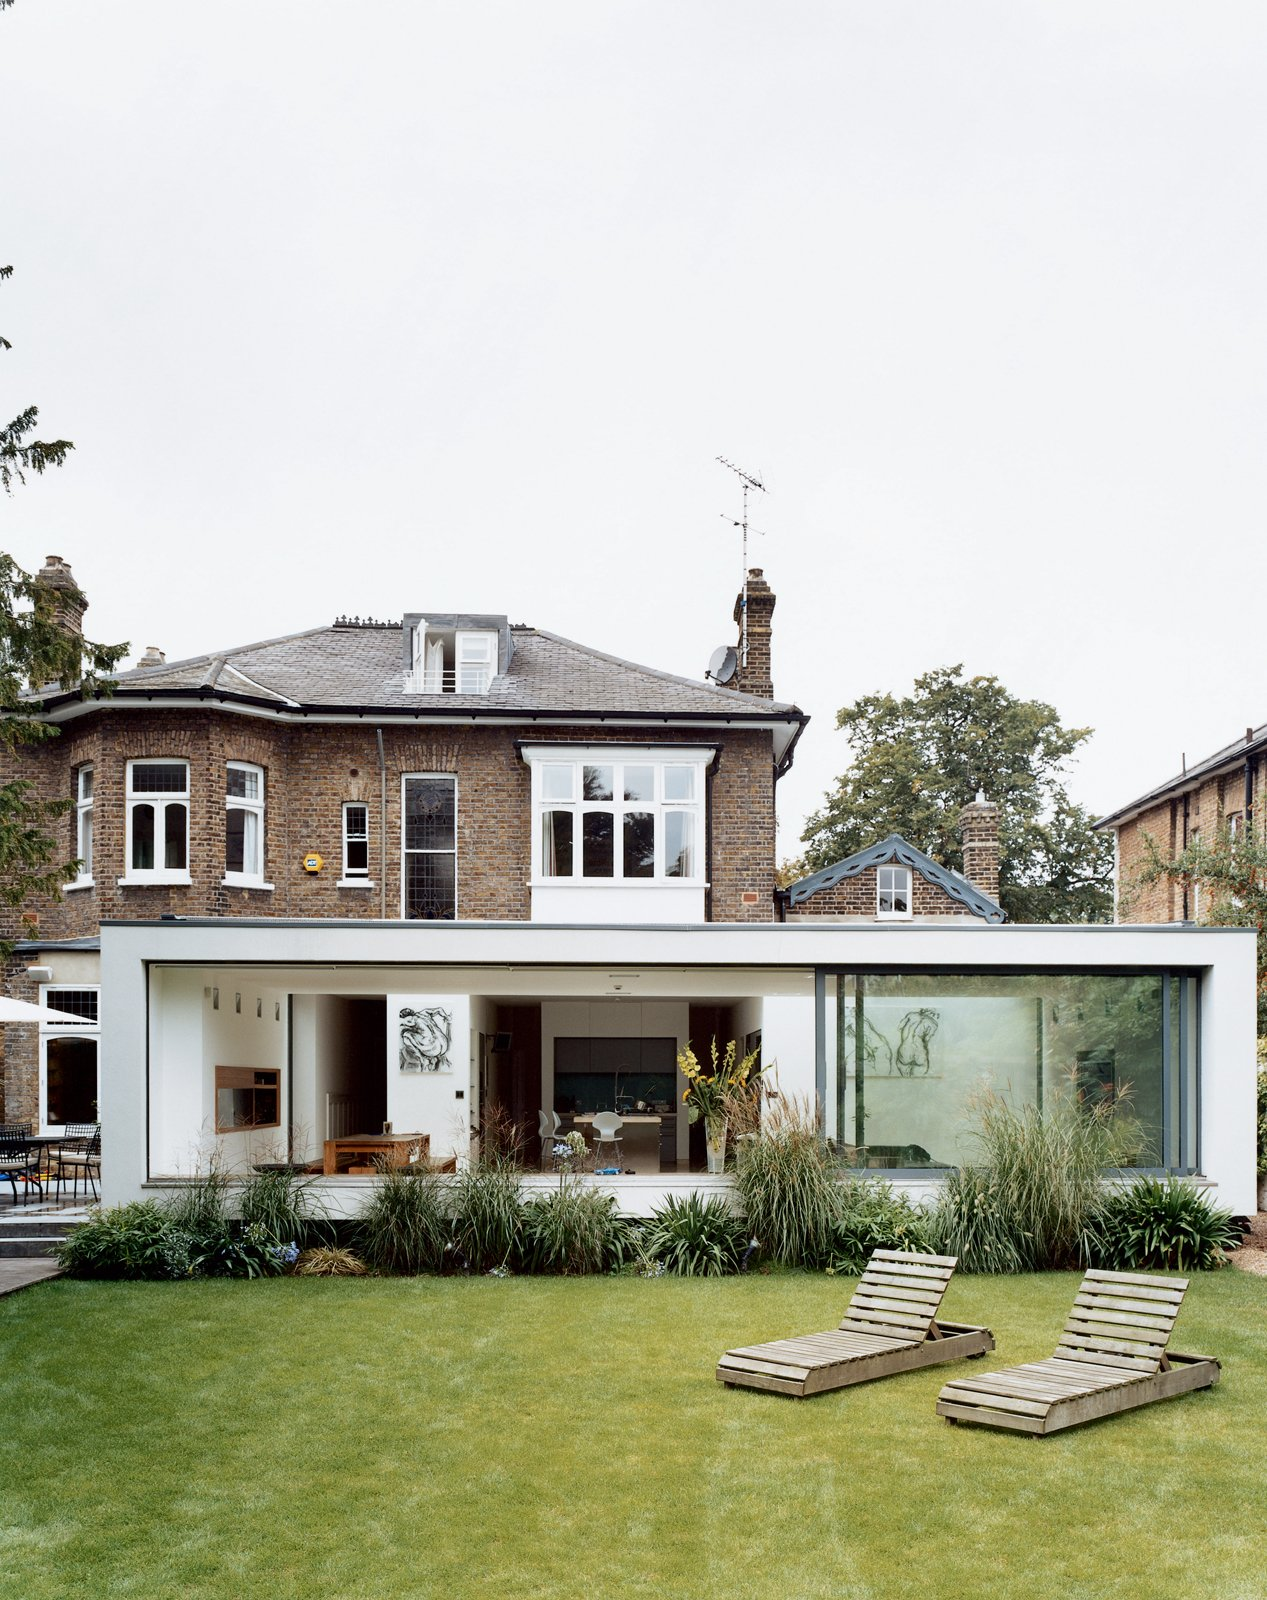 """New residential buildings are few and far between in England, so architects like Phillips have increasingly been charged with creating groundbreaking modern environments within the shells of historic houses. """"People just find it easier to work within existing houses to transform them to be sleek, stylish and functional,"""" says Phillips. """"Extensions have almost become a requirement for any homeowner who wants to be a part of modern living within the U.K."""" Victorian Secrets - Photo 10 of 10"""